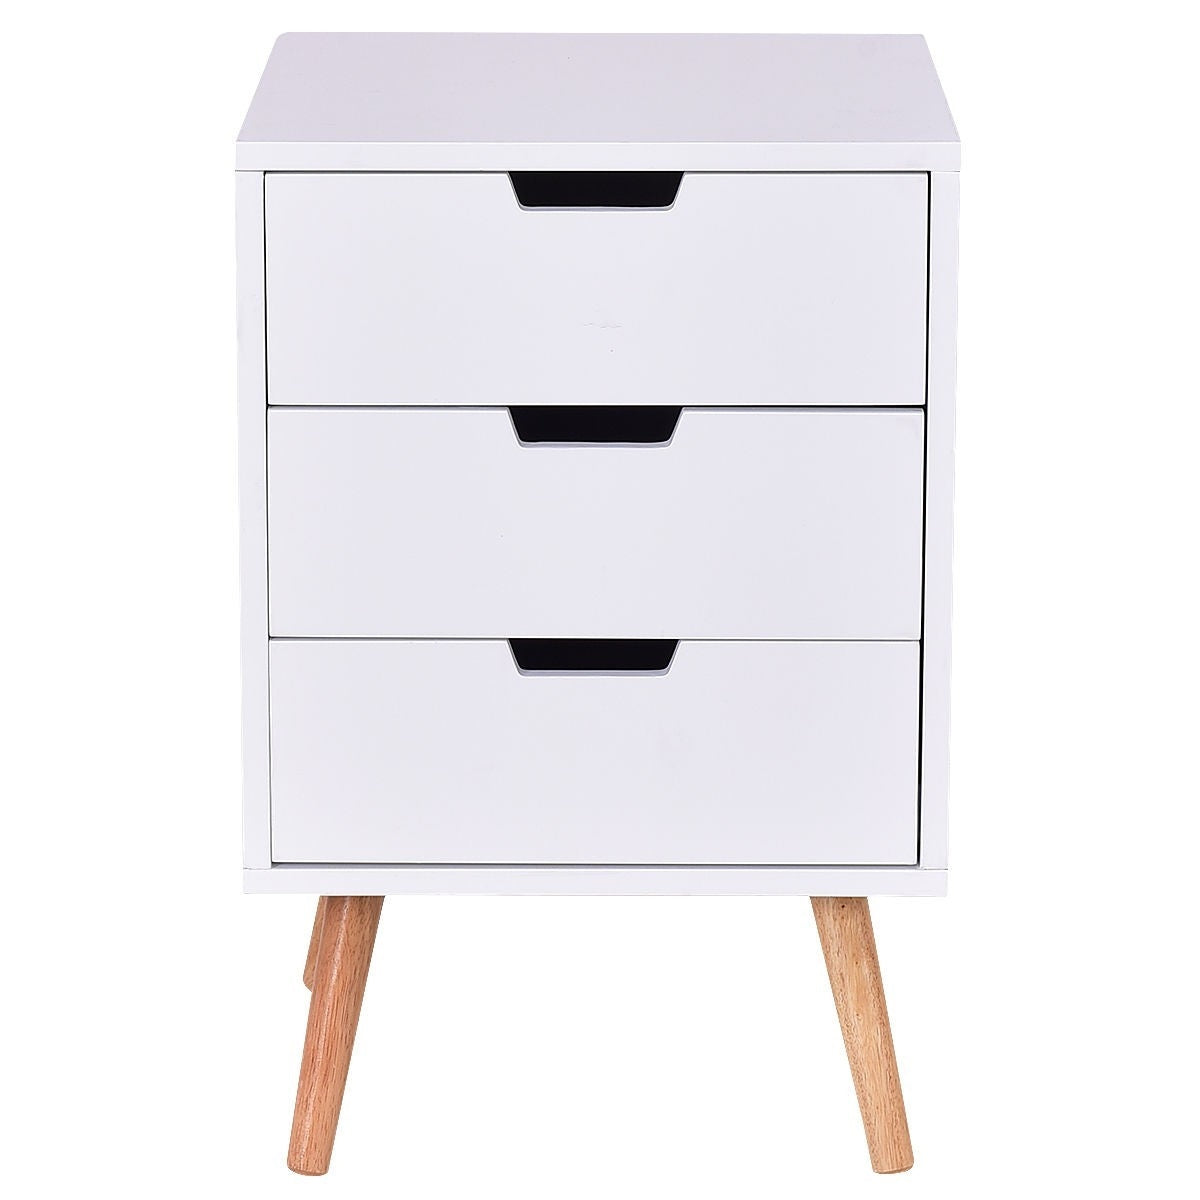 Modern Mid-Century Style 3-Drawer White Wood End Table Nightstand